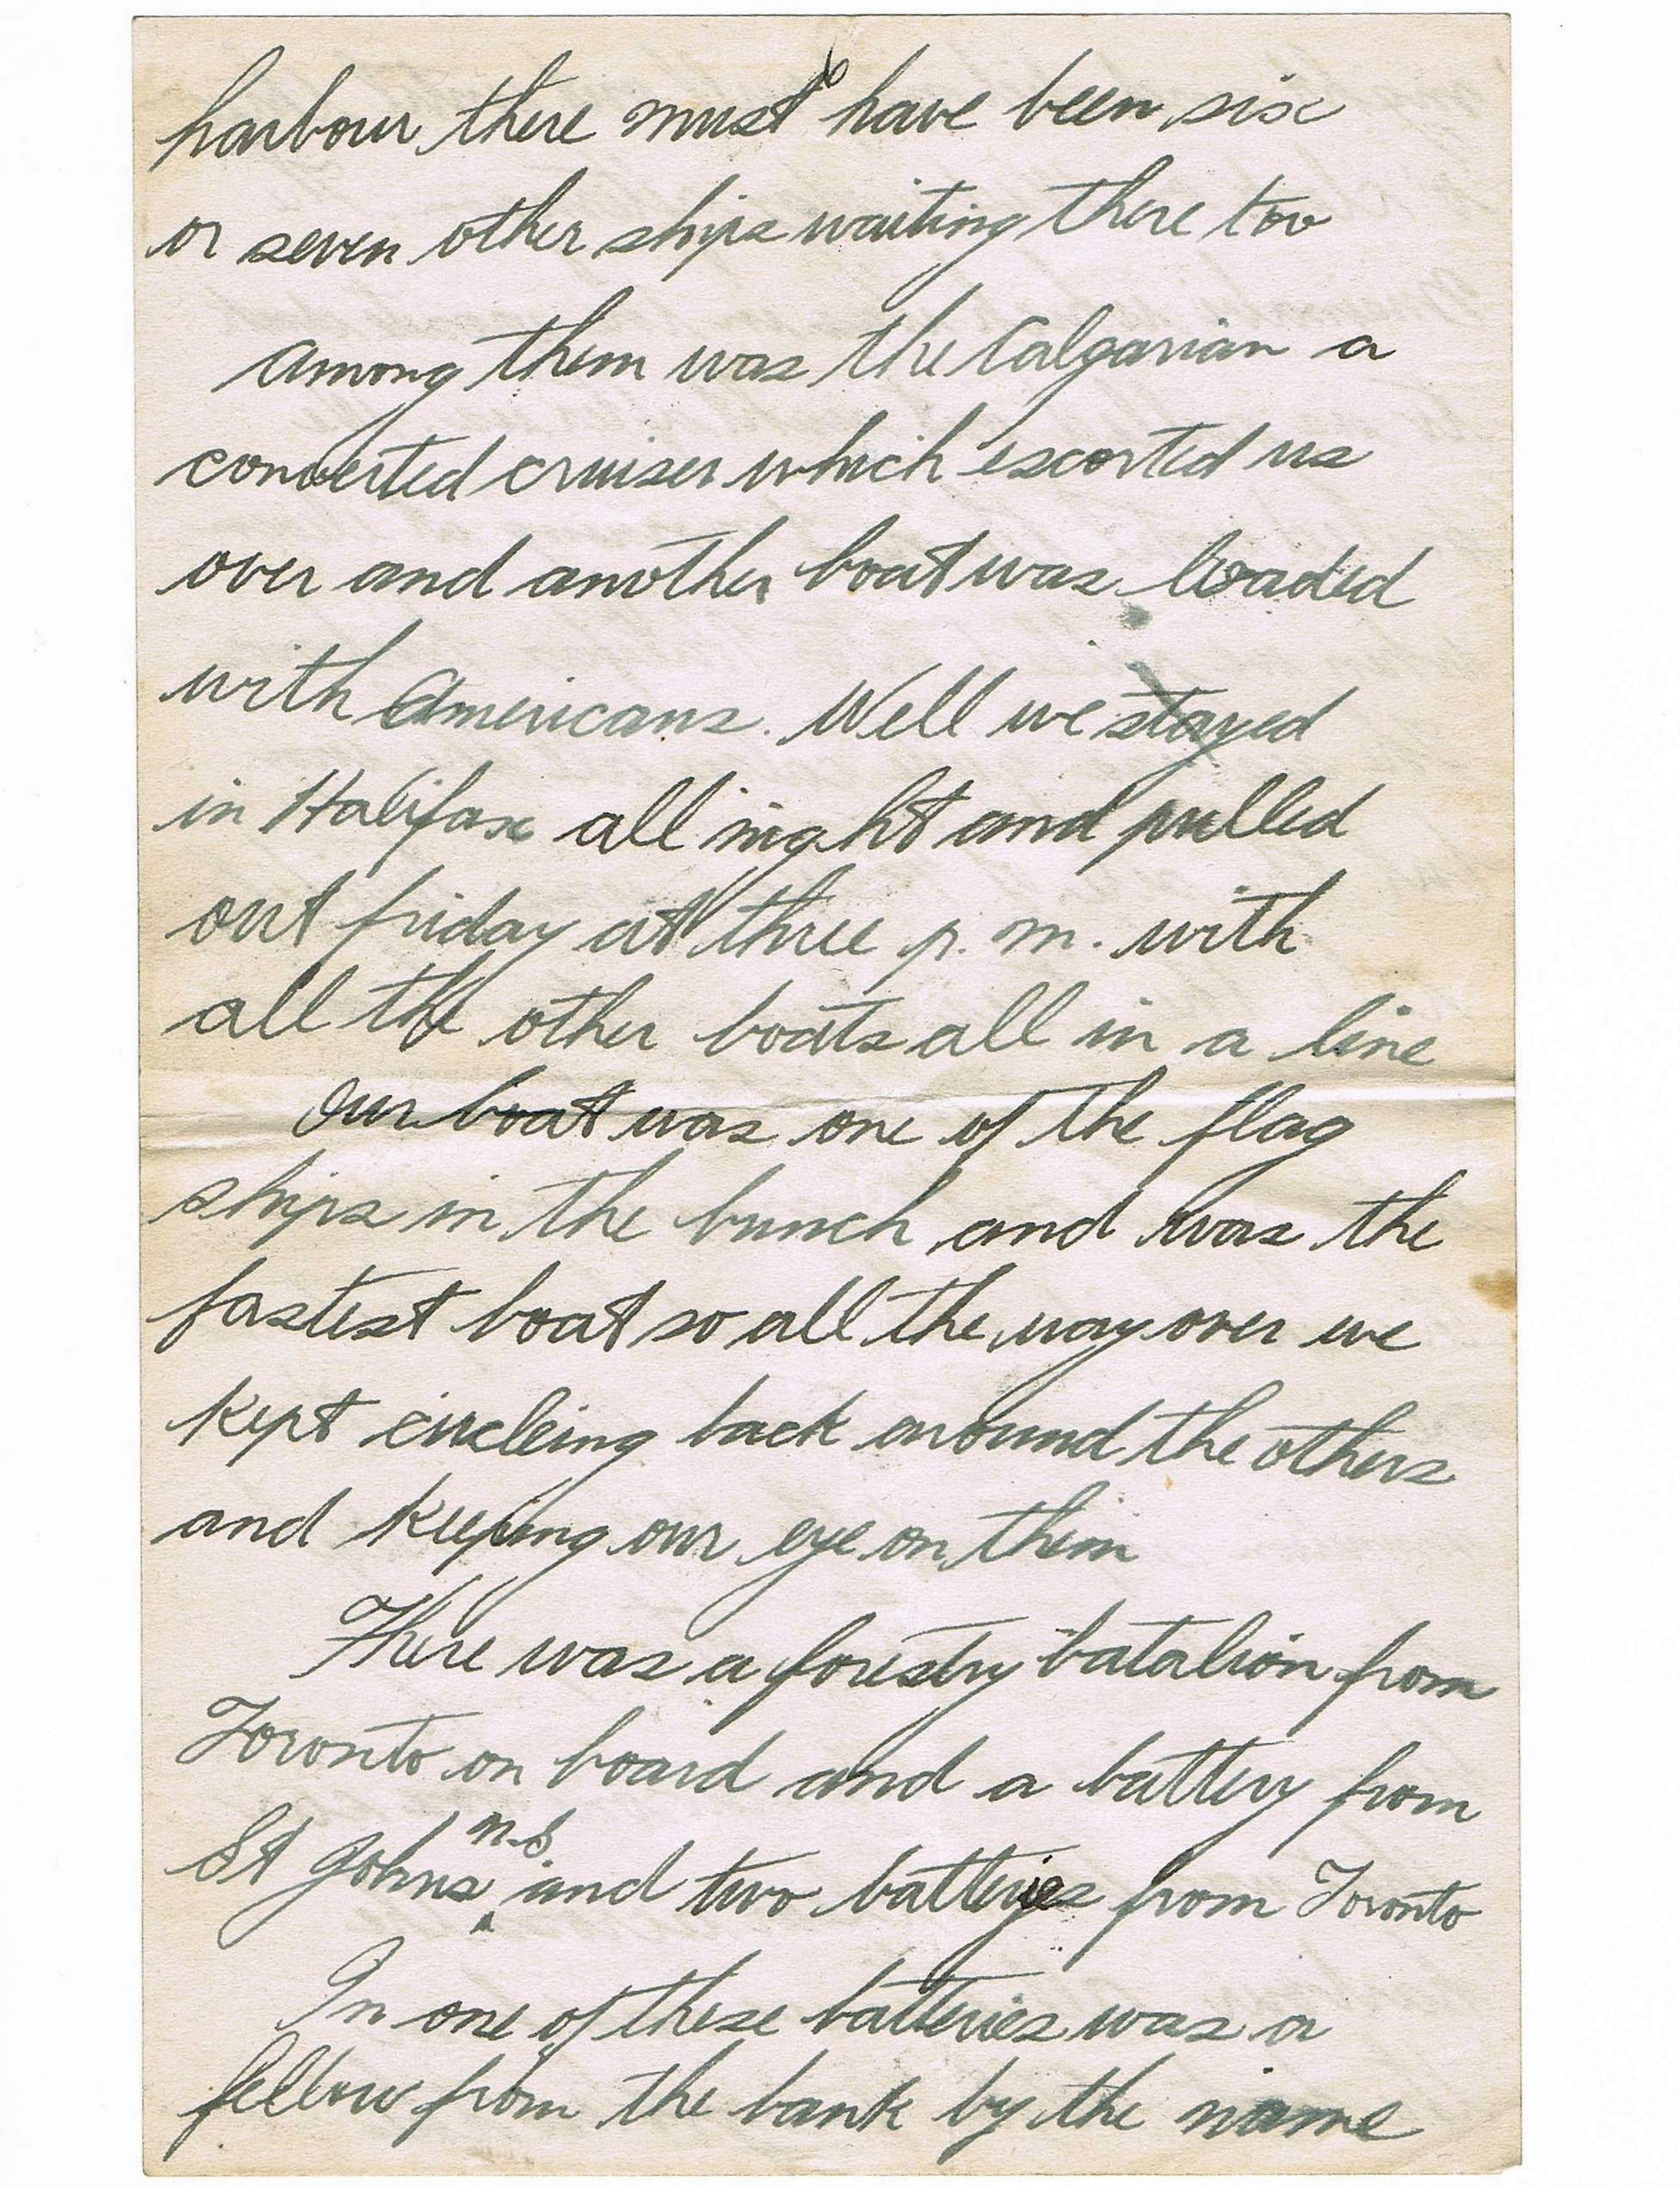 Sixth page of handwritten letter